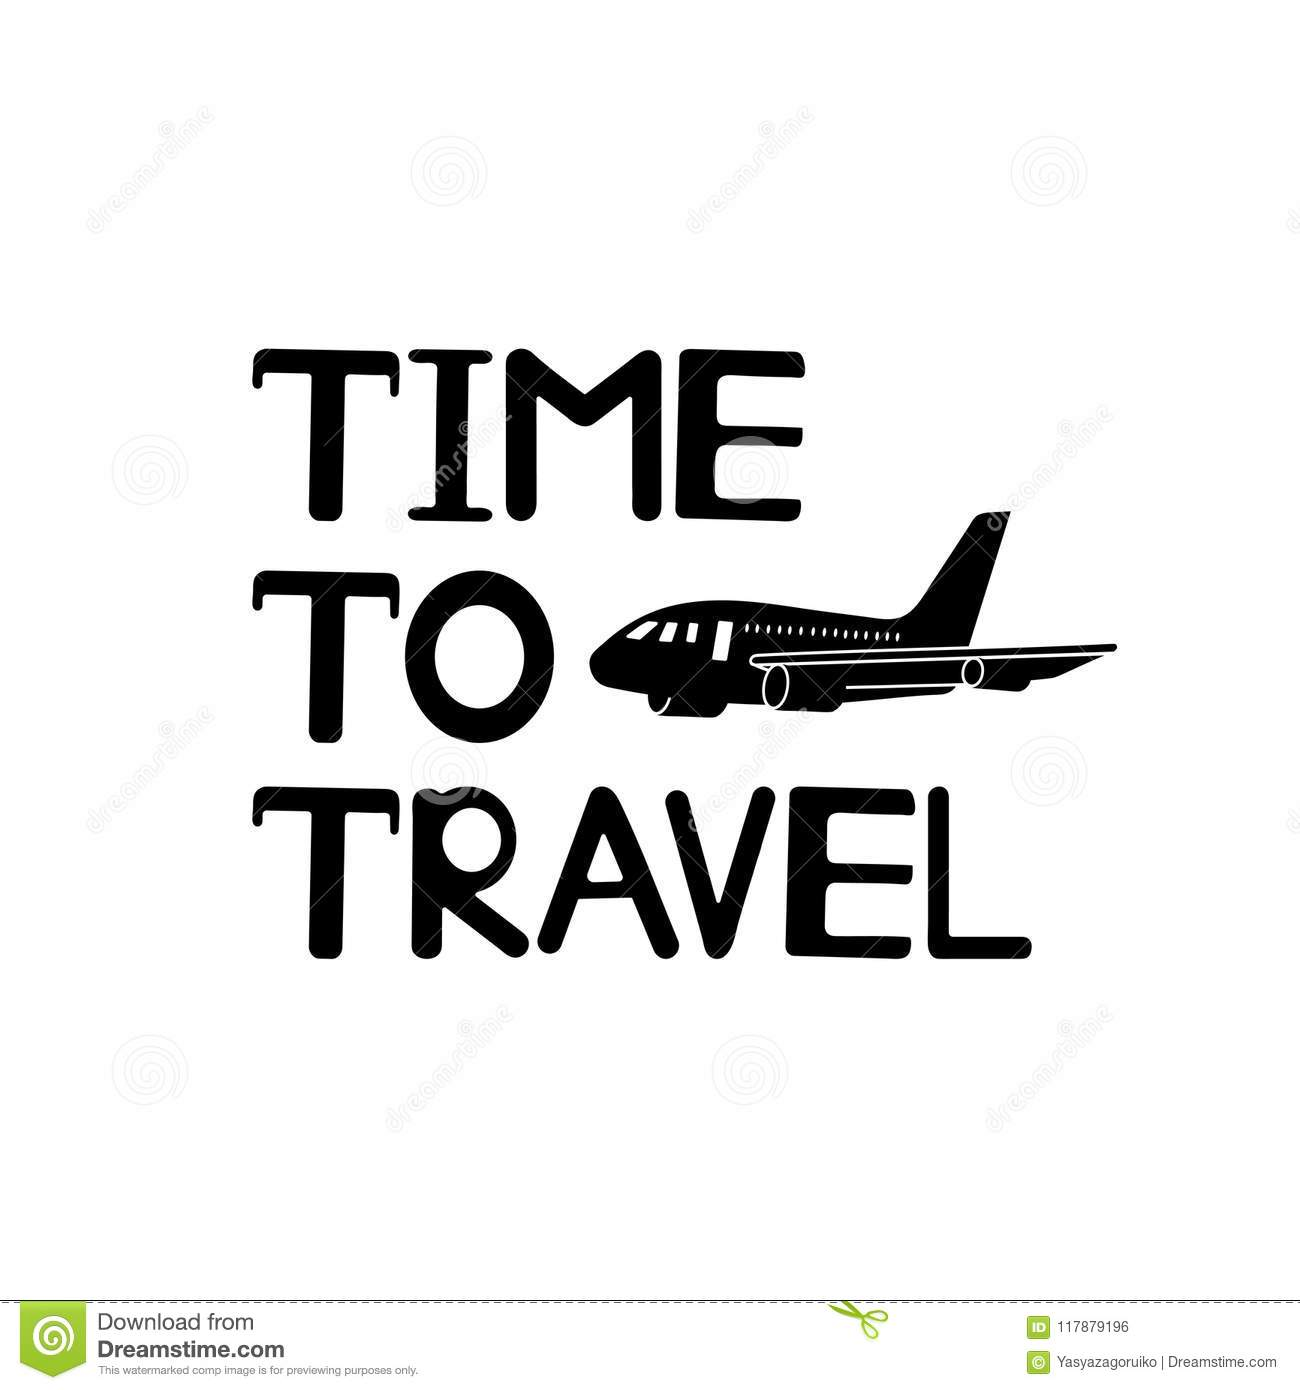 Time to travel text and black plane icon.